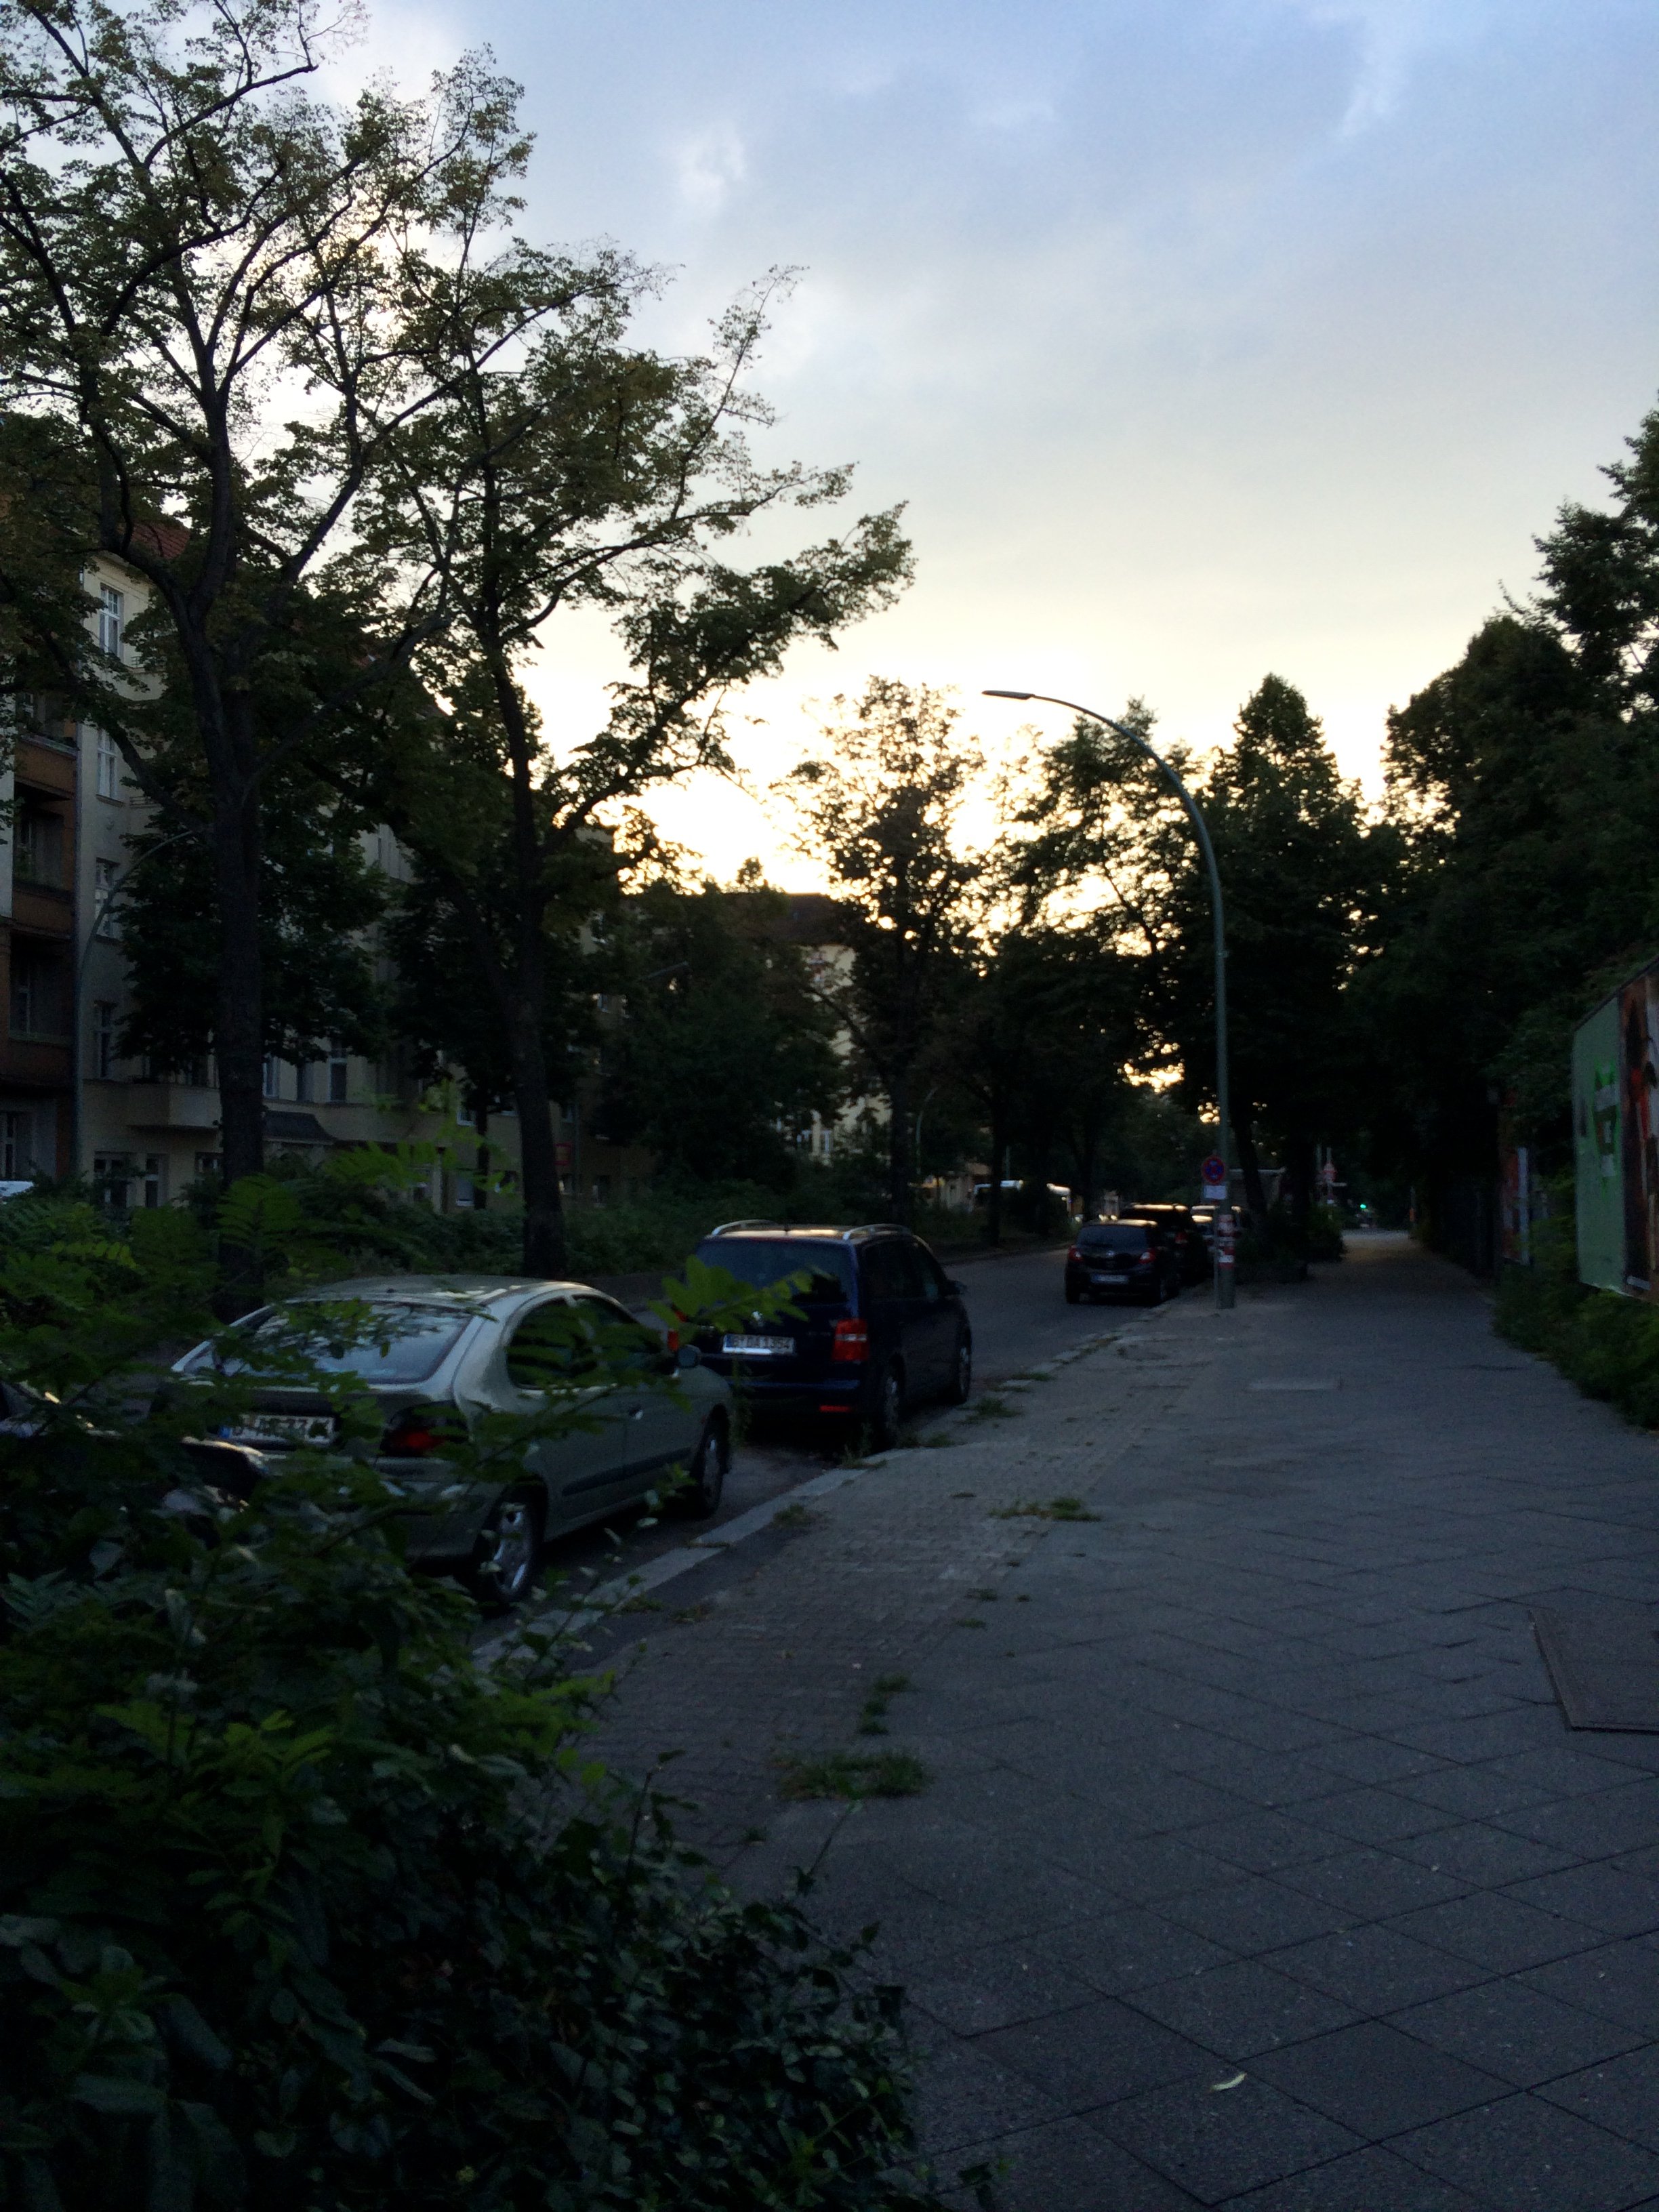 Sonnenallee in the evening, pretty sleepy right?